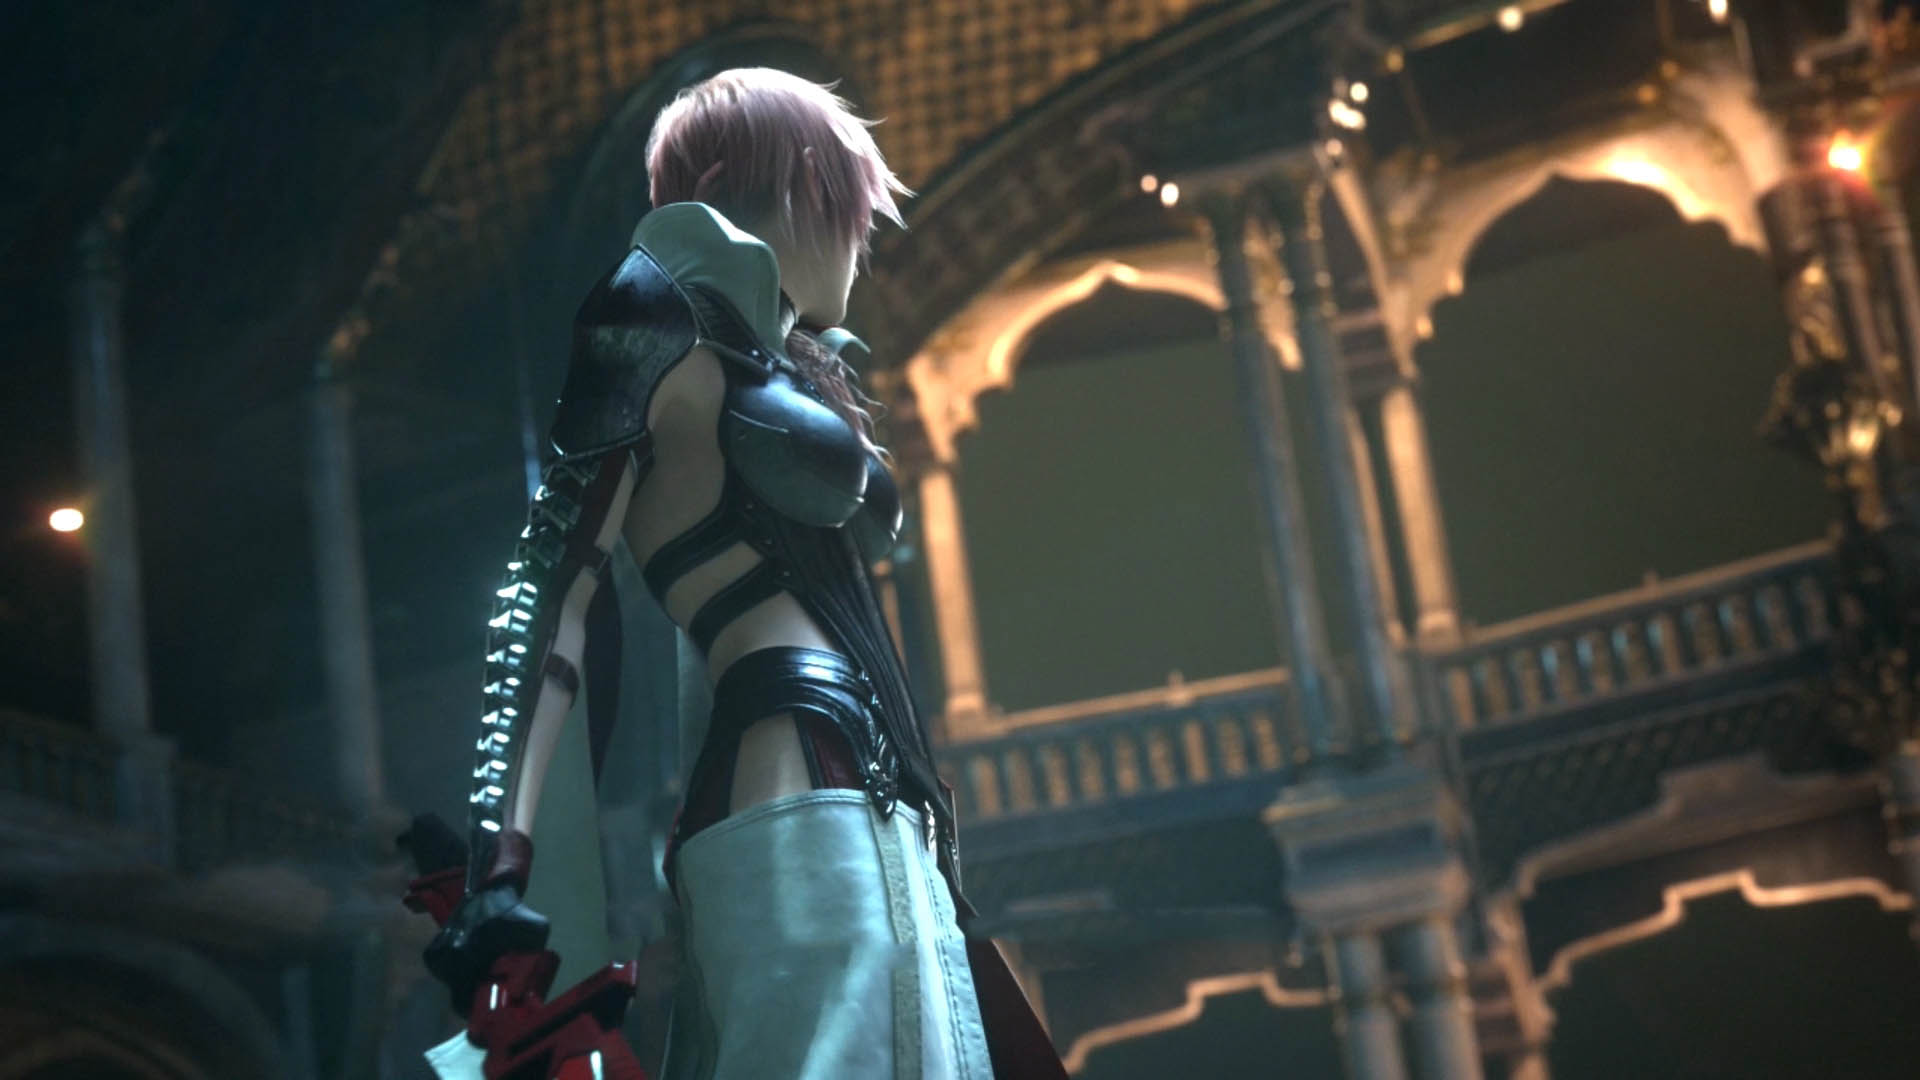 Final Fantasy 13 2 Wallpaper Hd Wallpapers Fond D Ecran Pour Lightning Returns Final